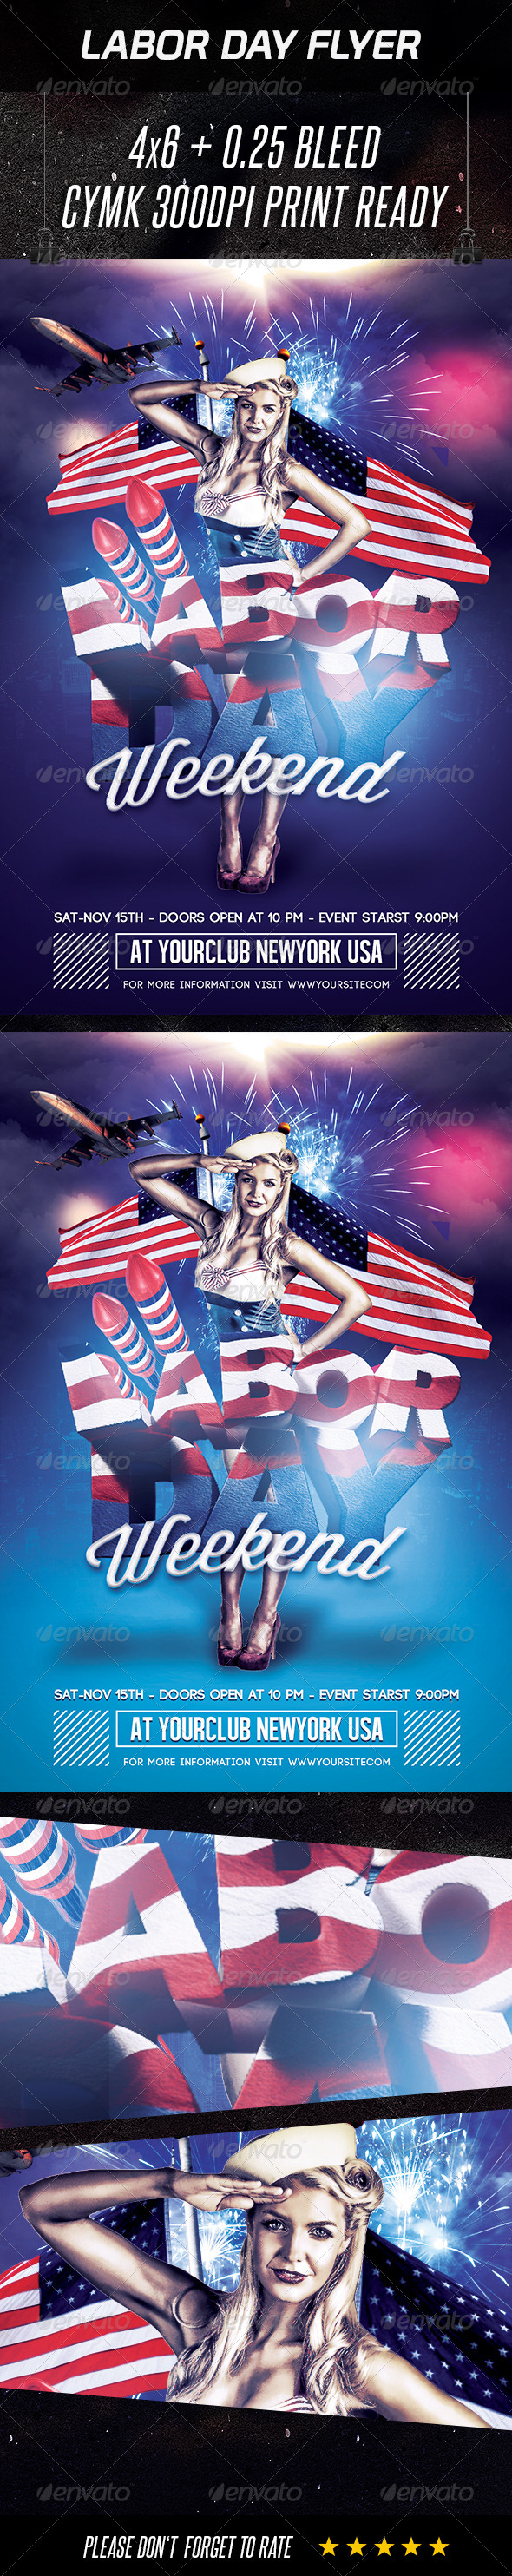 GraphicRiver Labor Day Flyer 8613483